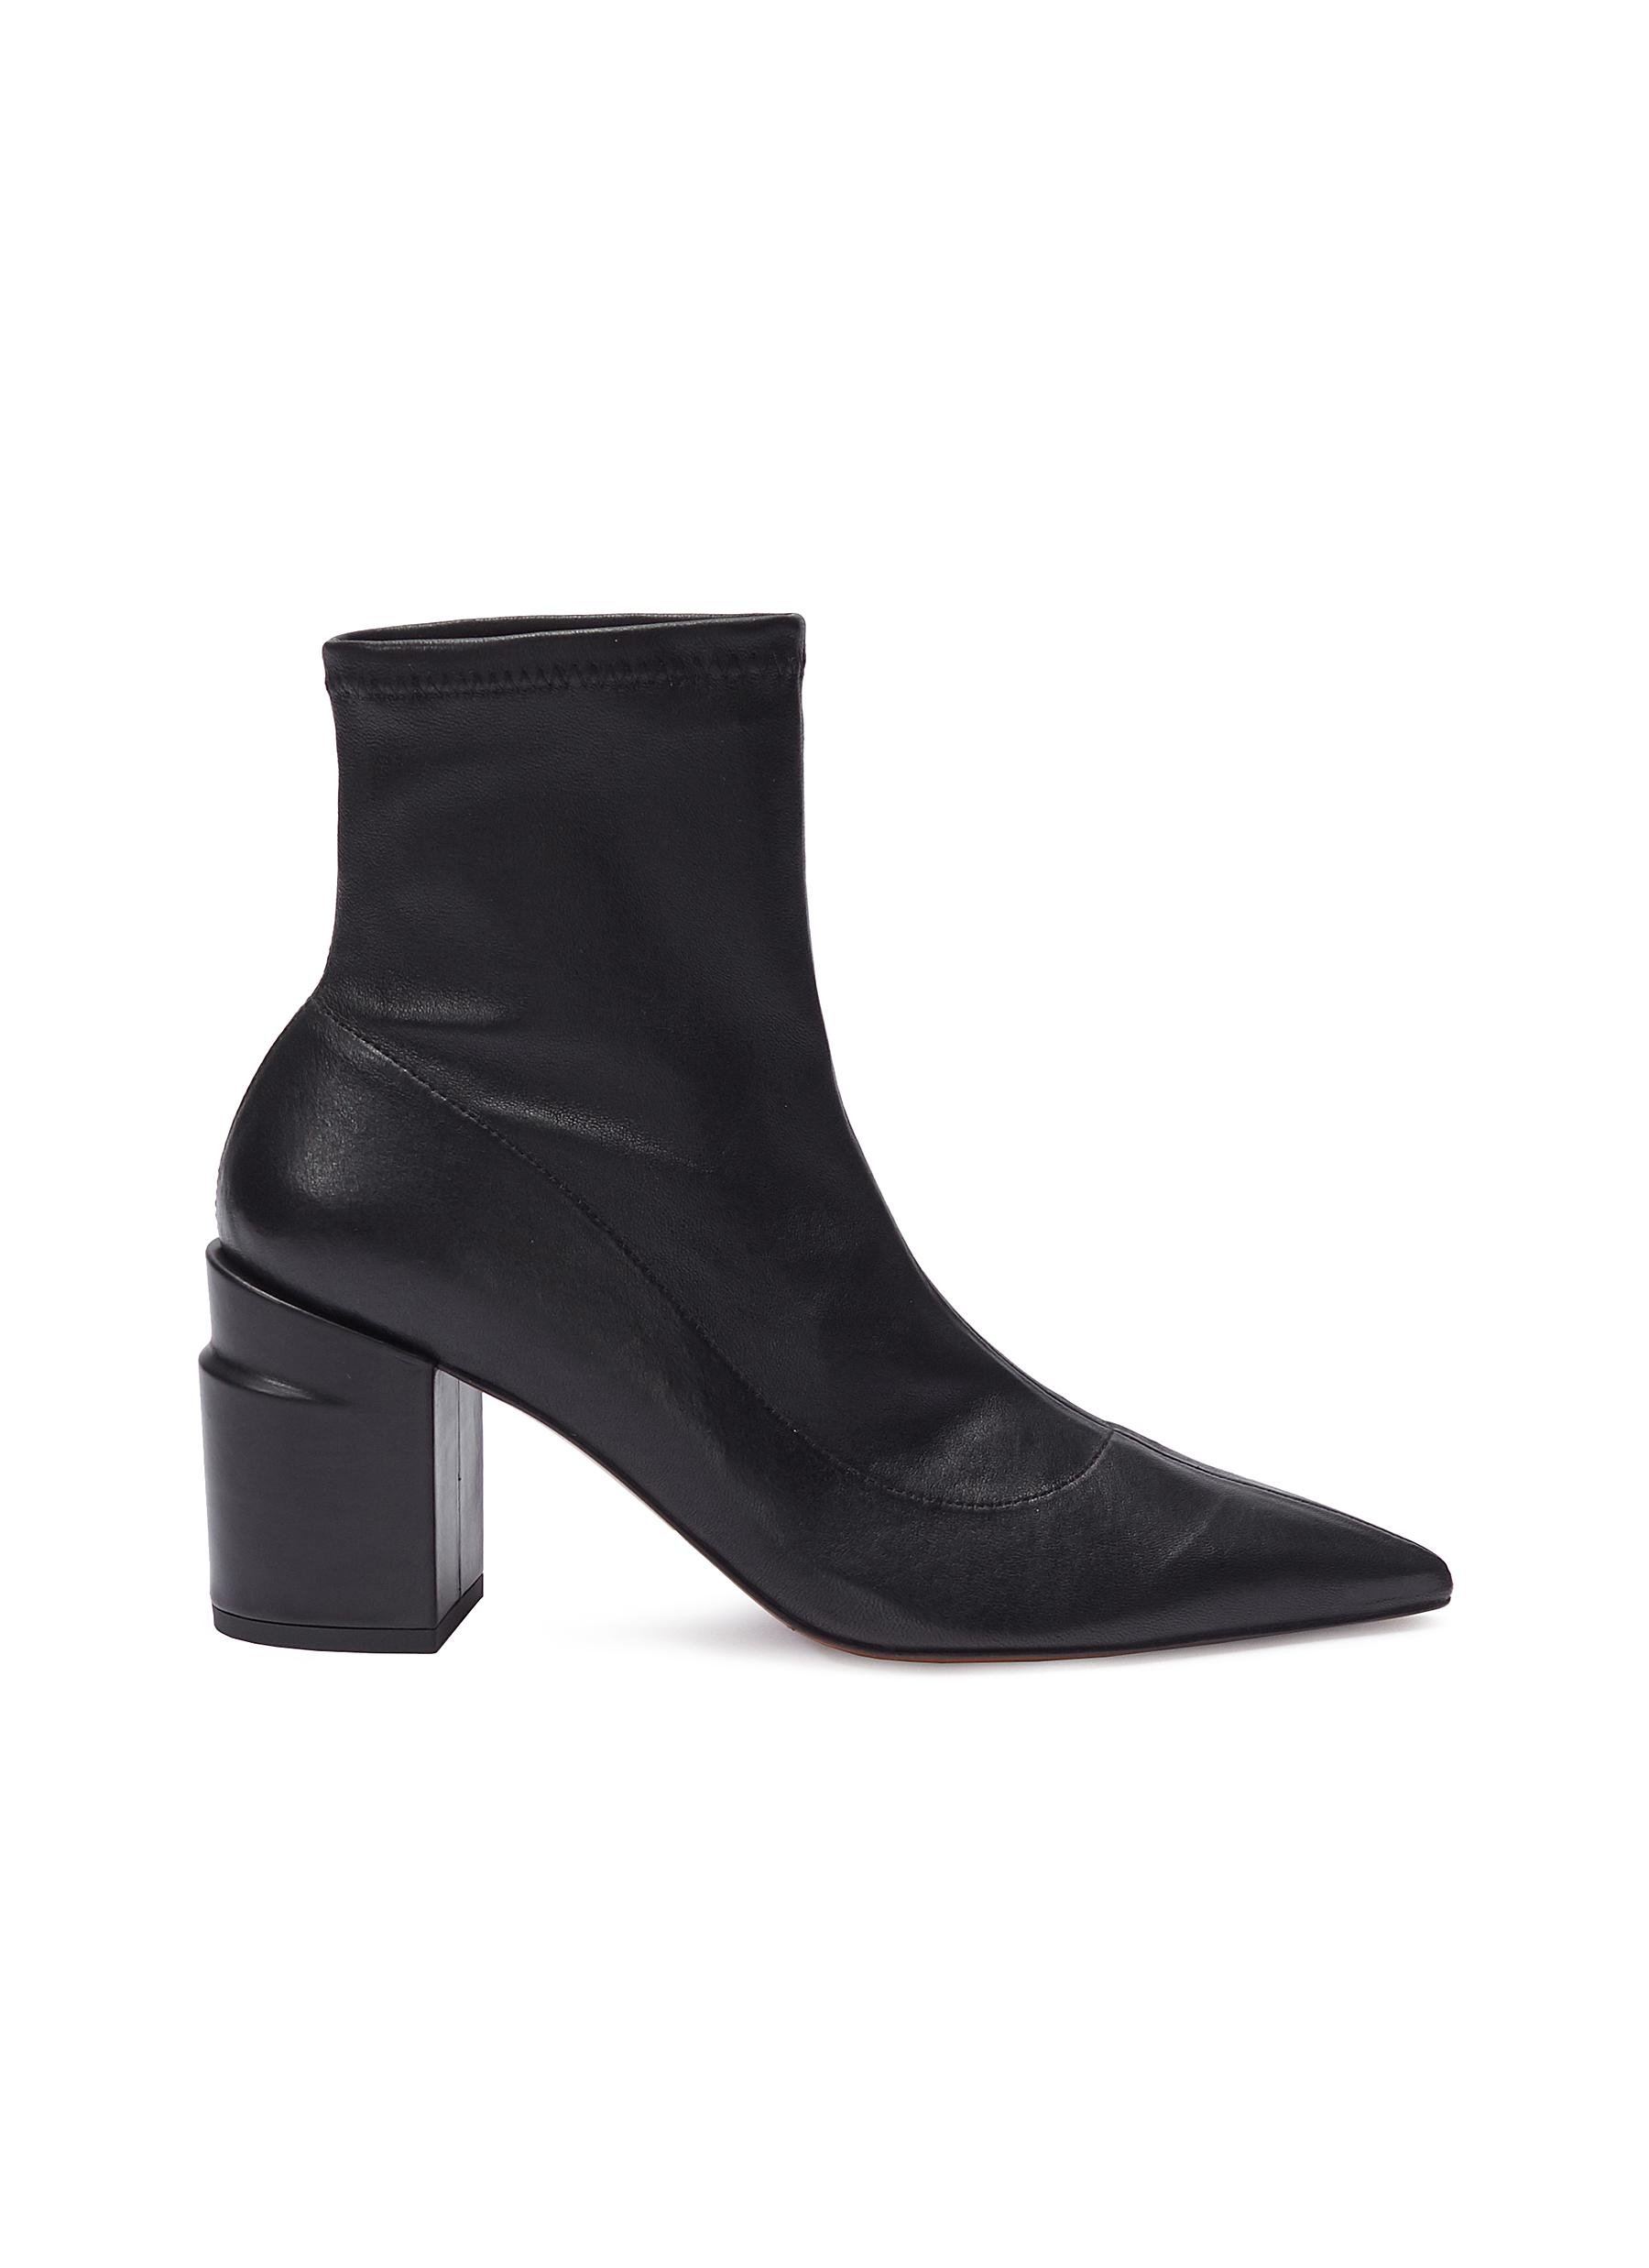 Alaska twist heel leather ankle boots by Clergerie